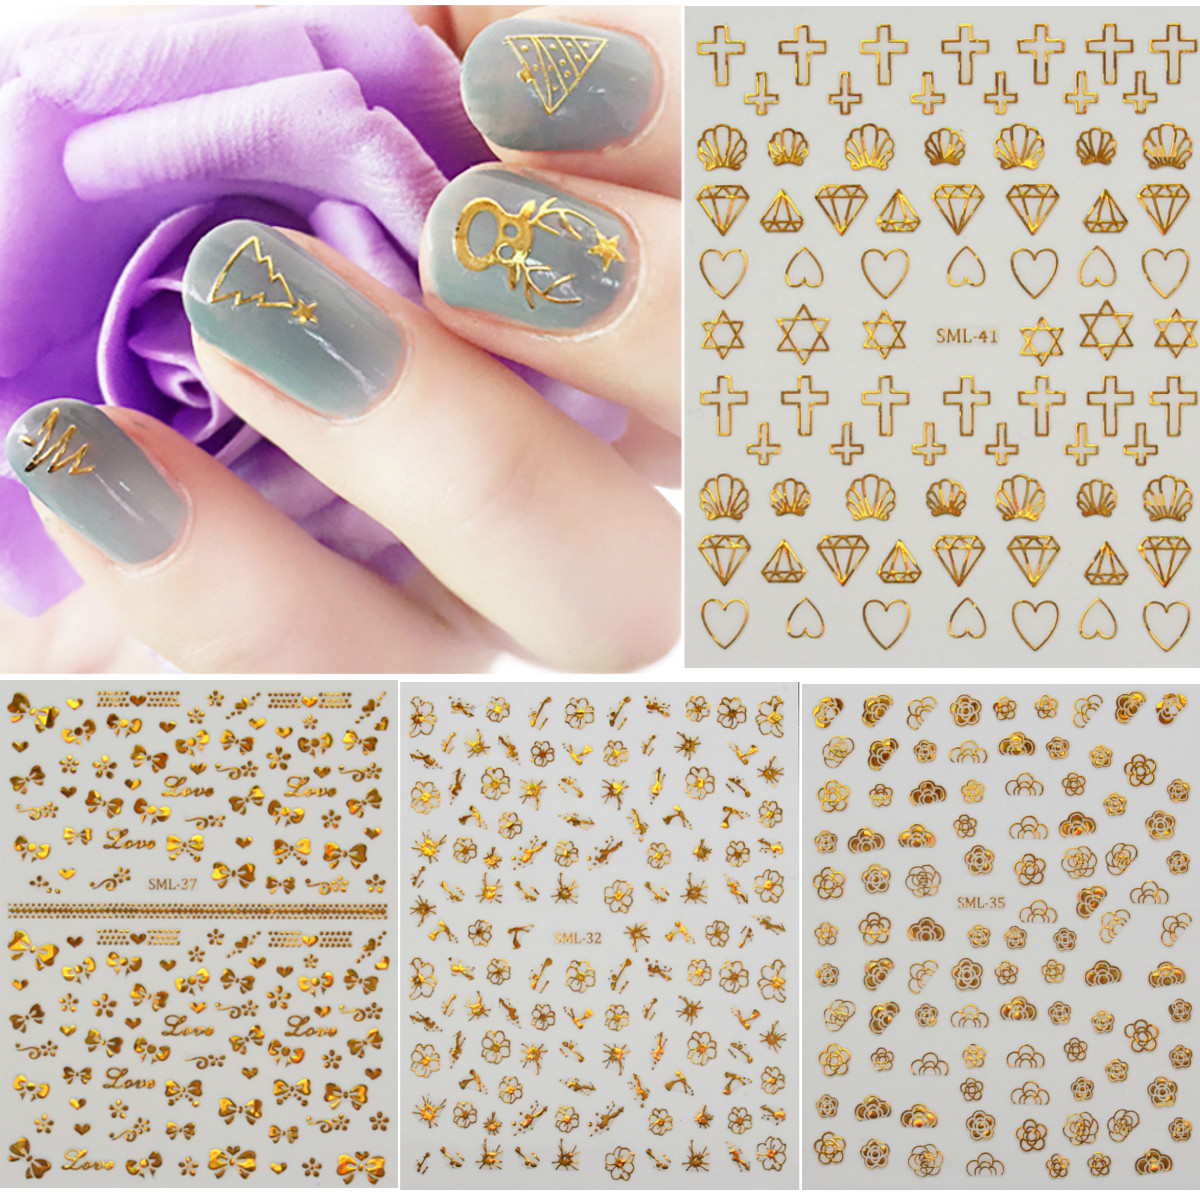 Nail Art Metallic Gold Glitter Stickers Decals Transfers DIY Decoration